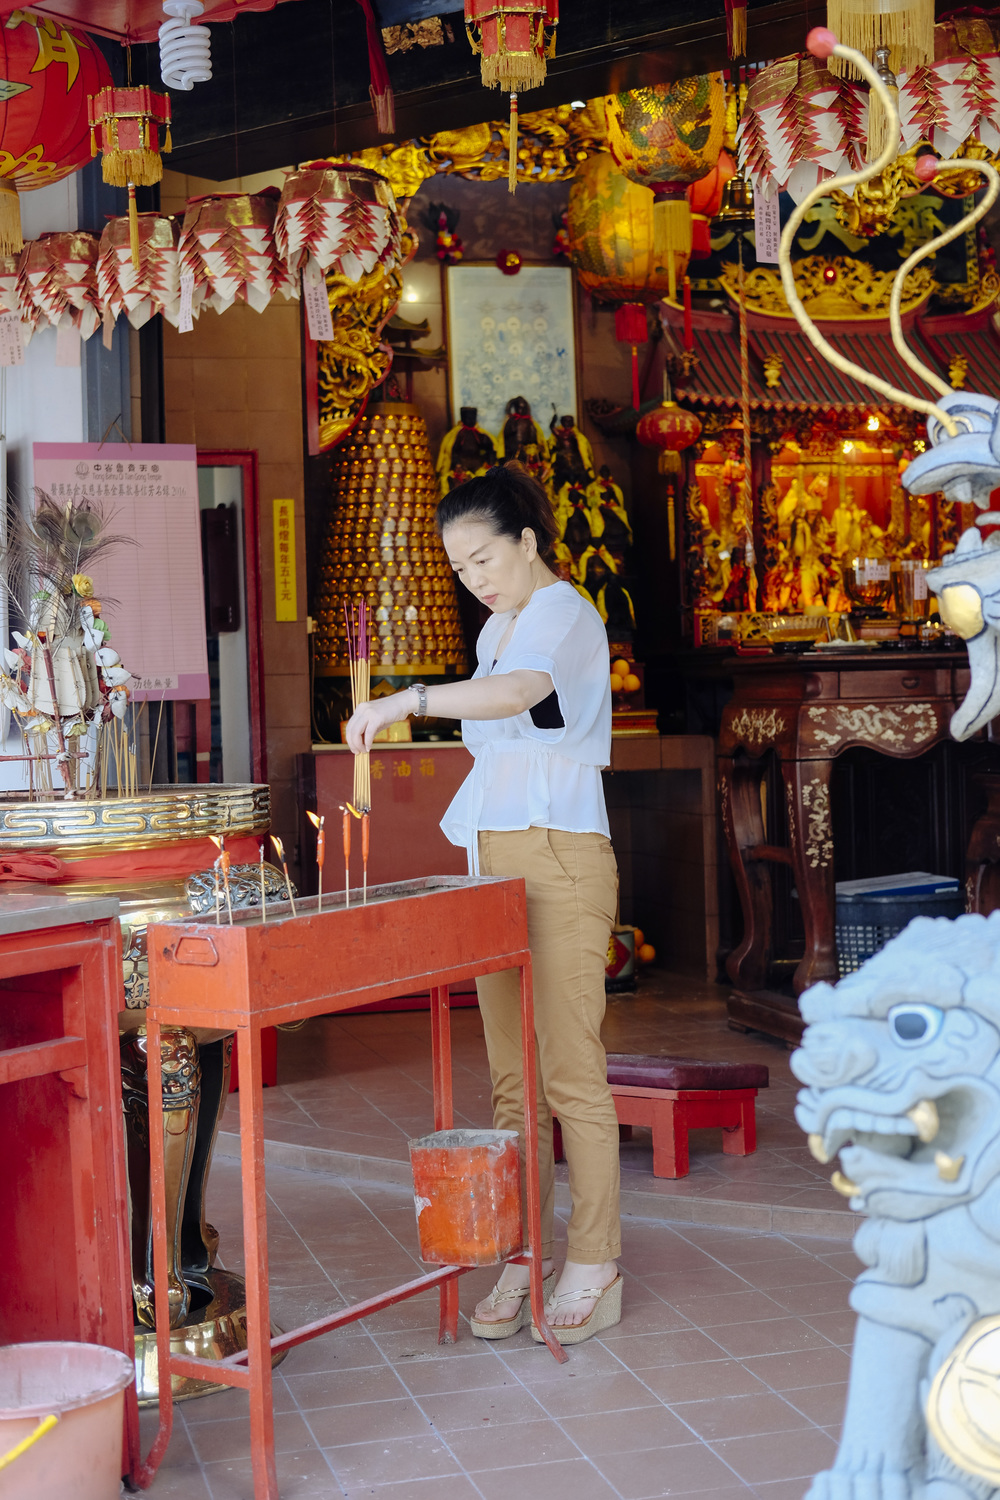 A devotee burns joss sticks at Qi Tian Gong, otherwise known as the Monkey God Temple to non-Chinese speakers.